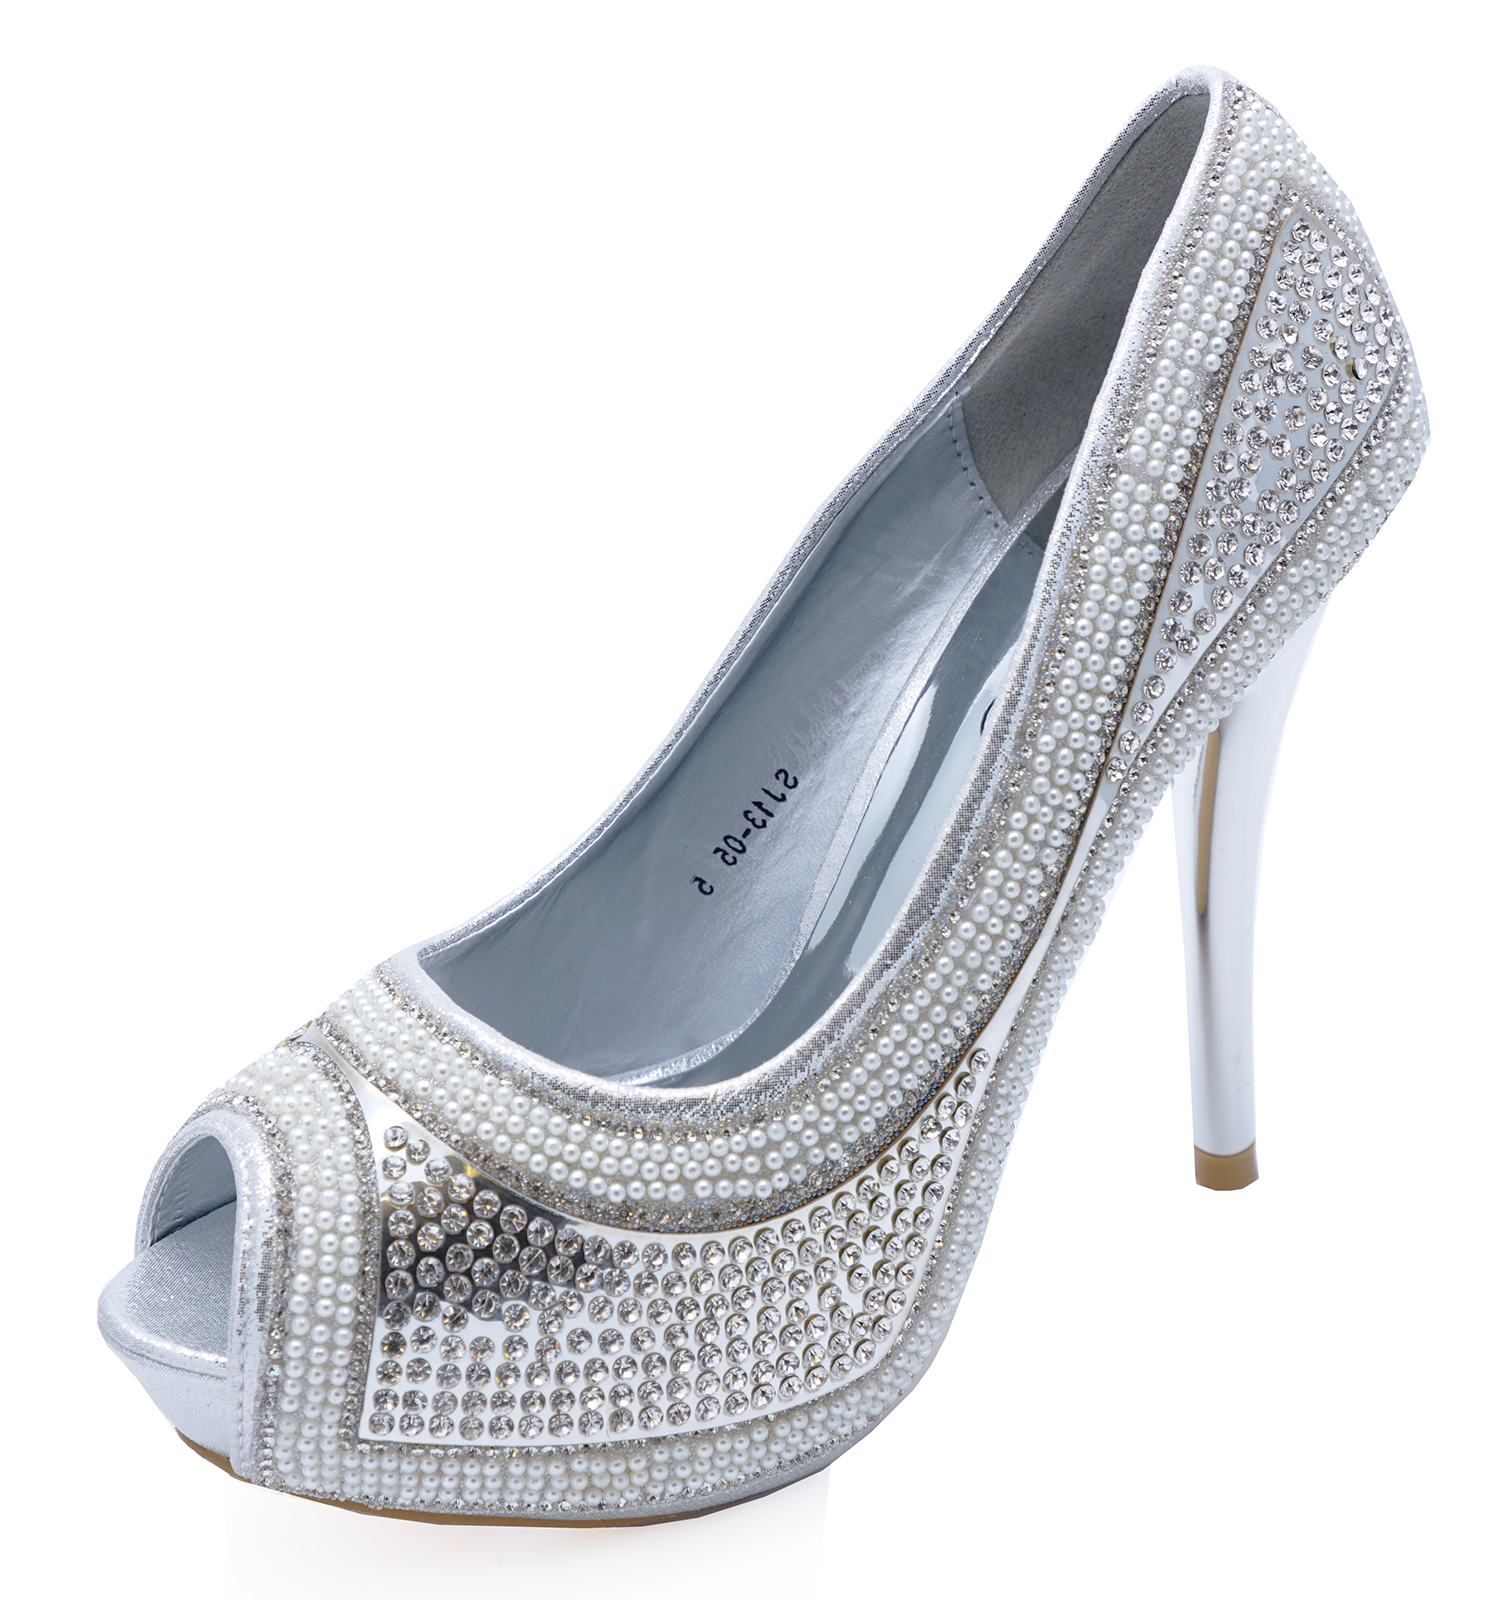 c6904c6d06ef Sentinel WOMENS SILVER DIAMANTE PLATFORM OPEN-TOE STILETTO SLIP-ON SHOES  SIZES 3-7